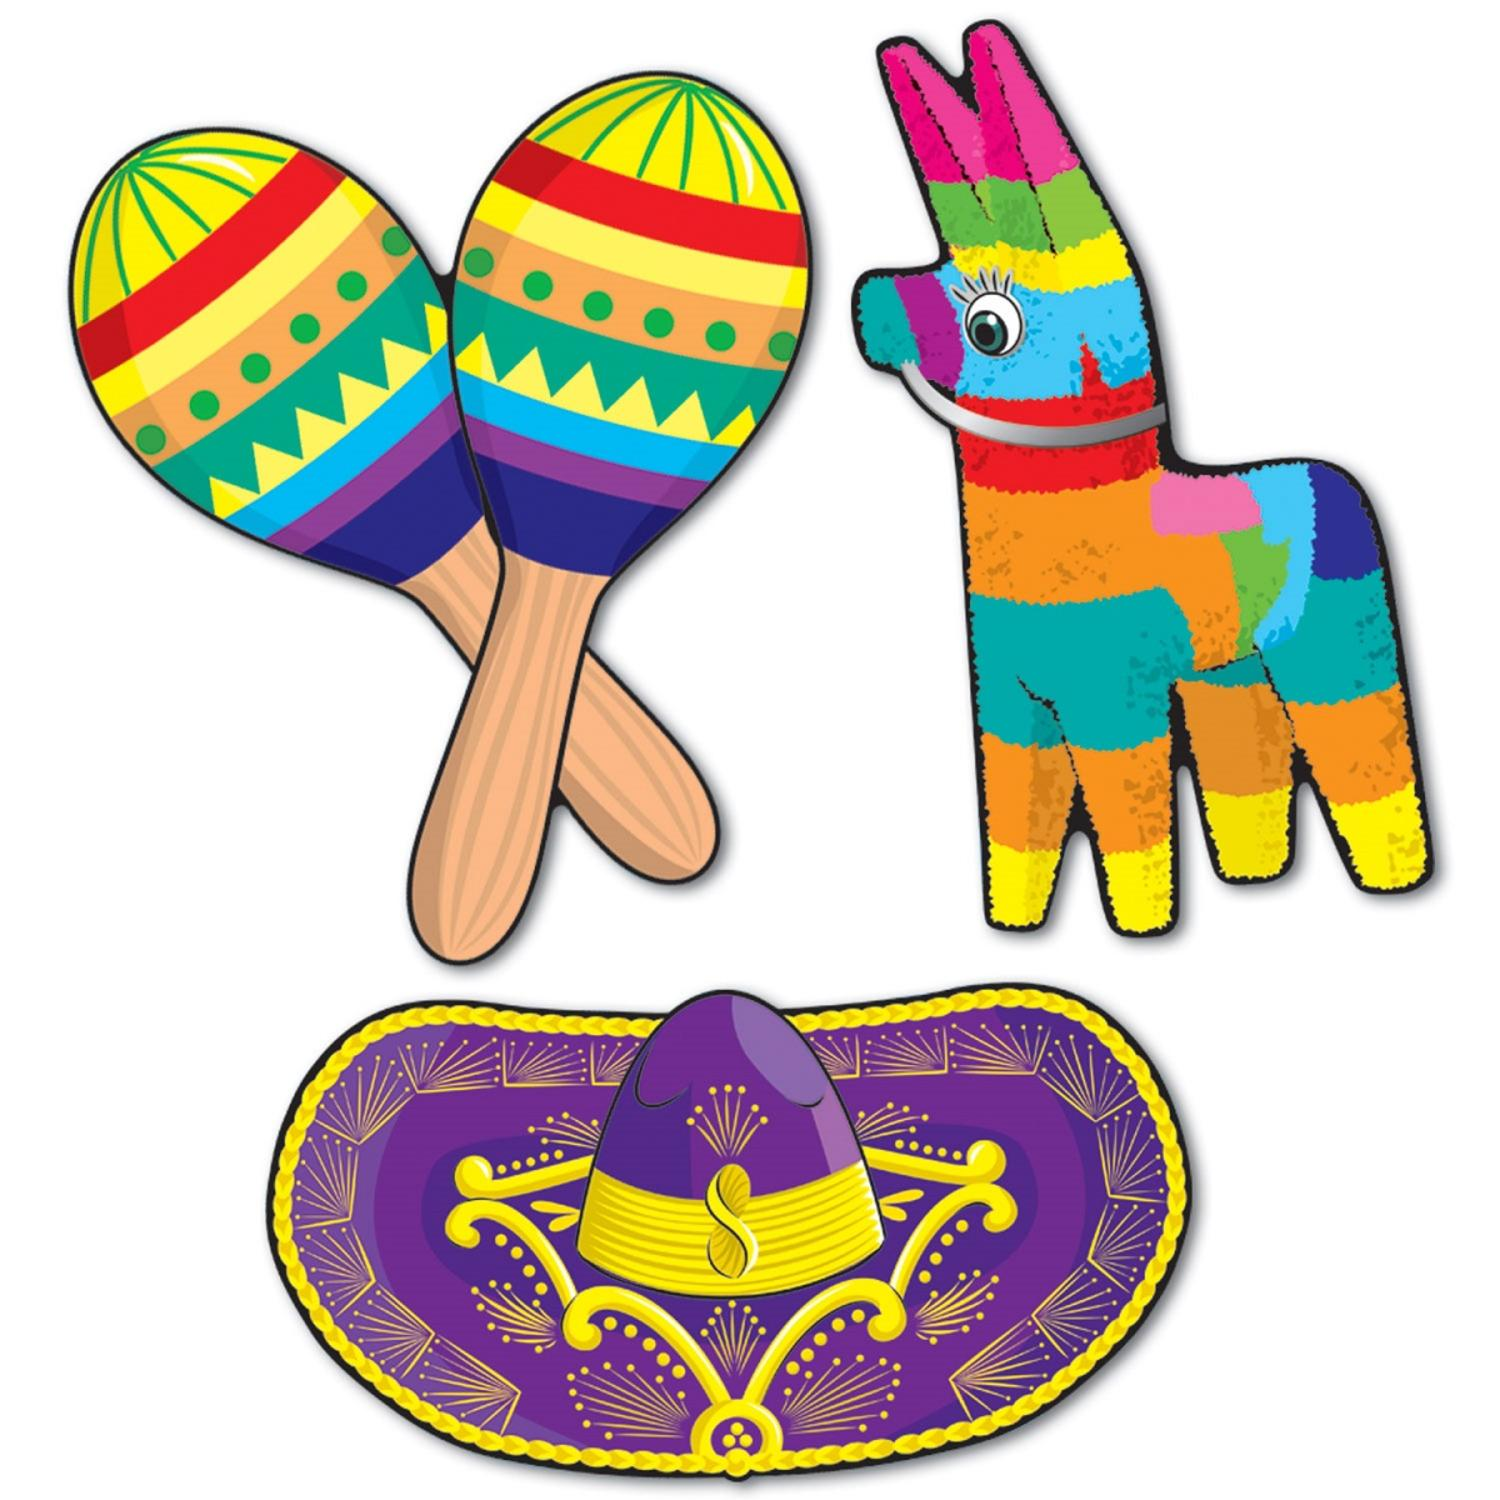 Pack of 36 Festive Multi-Colored Mexican Fiesta Cutout Party Decorations 17.5""